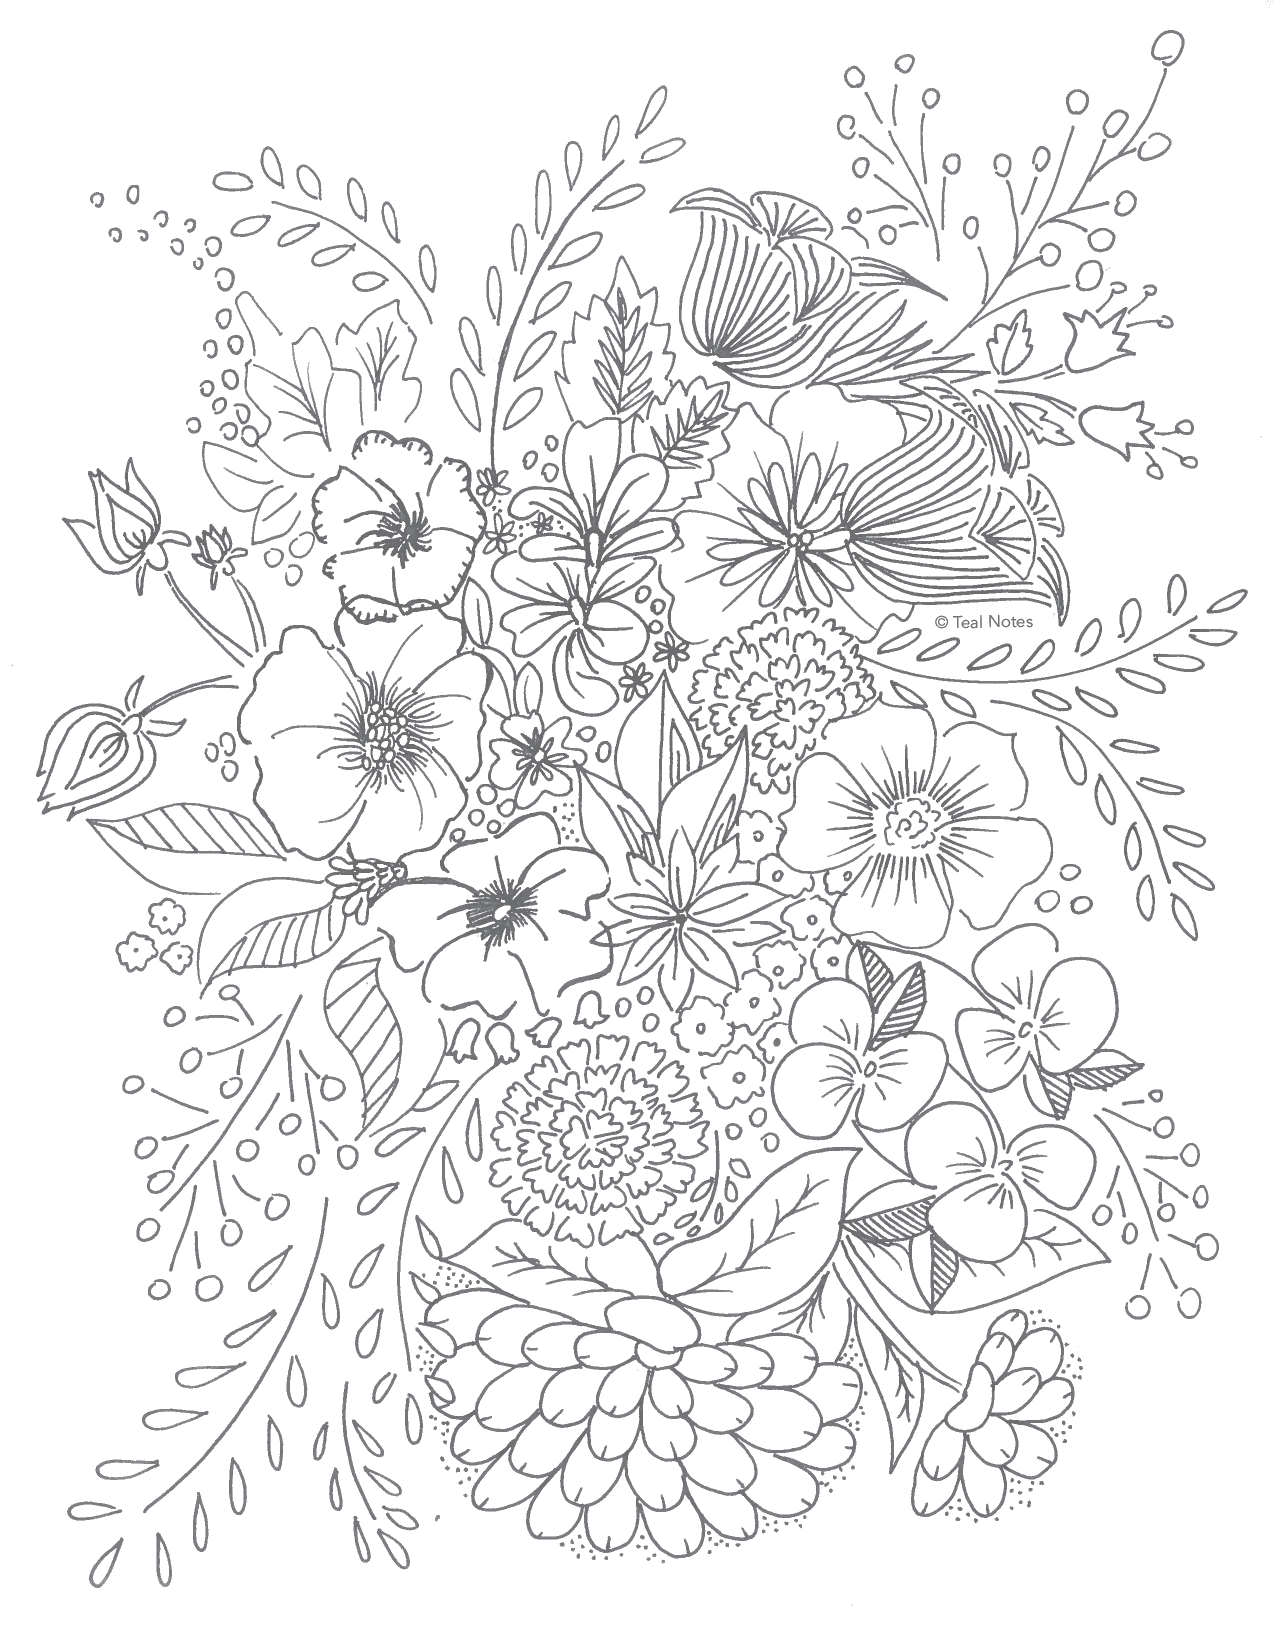 image regarding Free Printable Flower Coloring Pages named No cost Printable Coloring Web pages: 10 Refreshing Printable Coloring In direction of